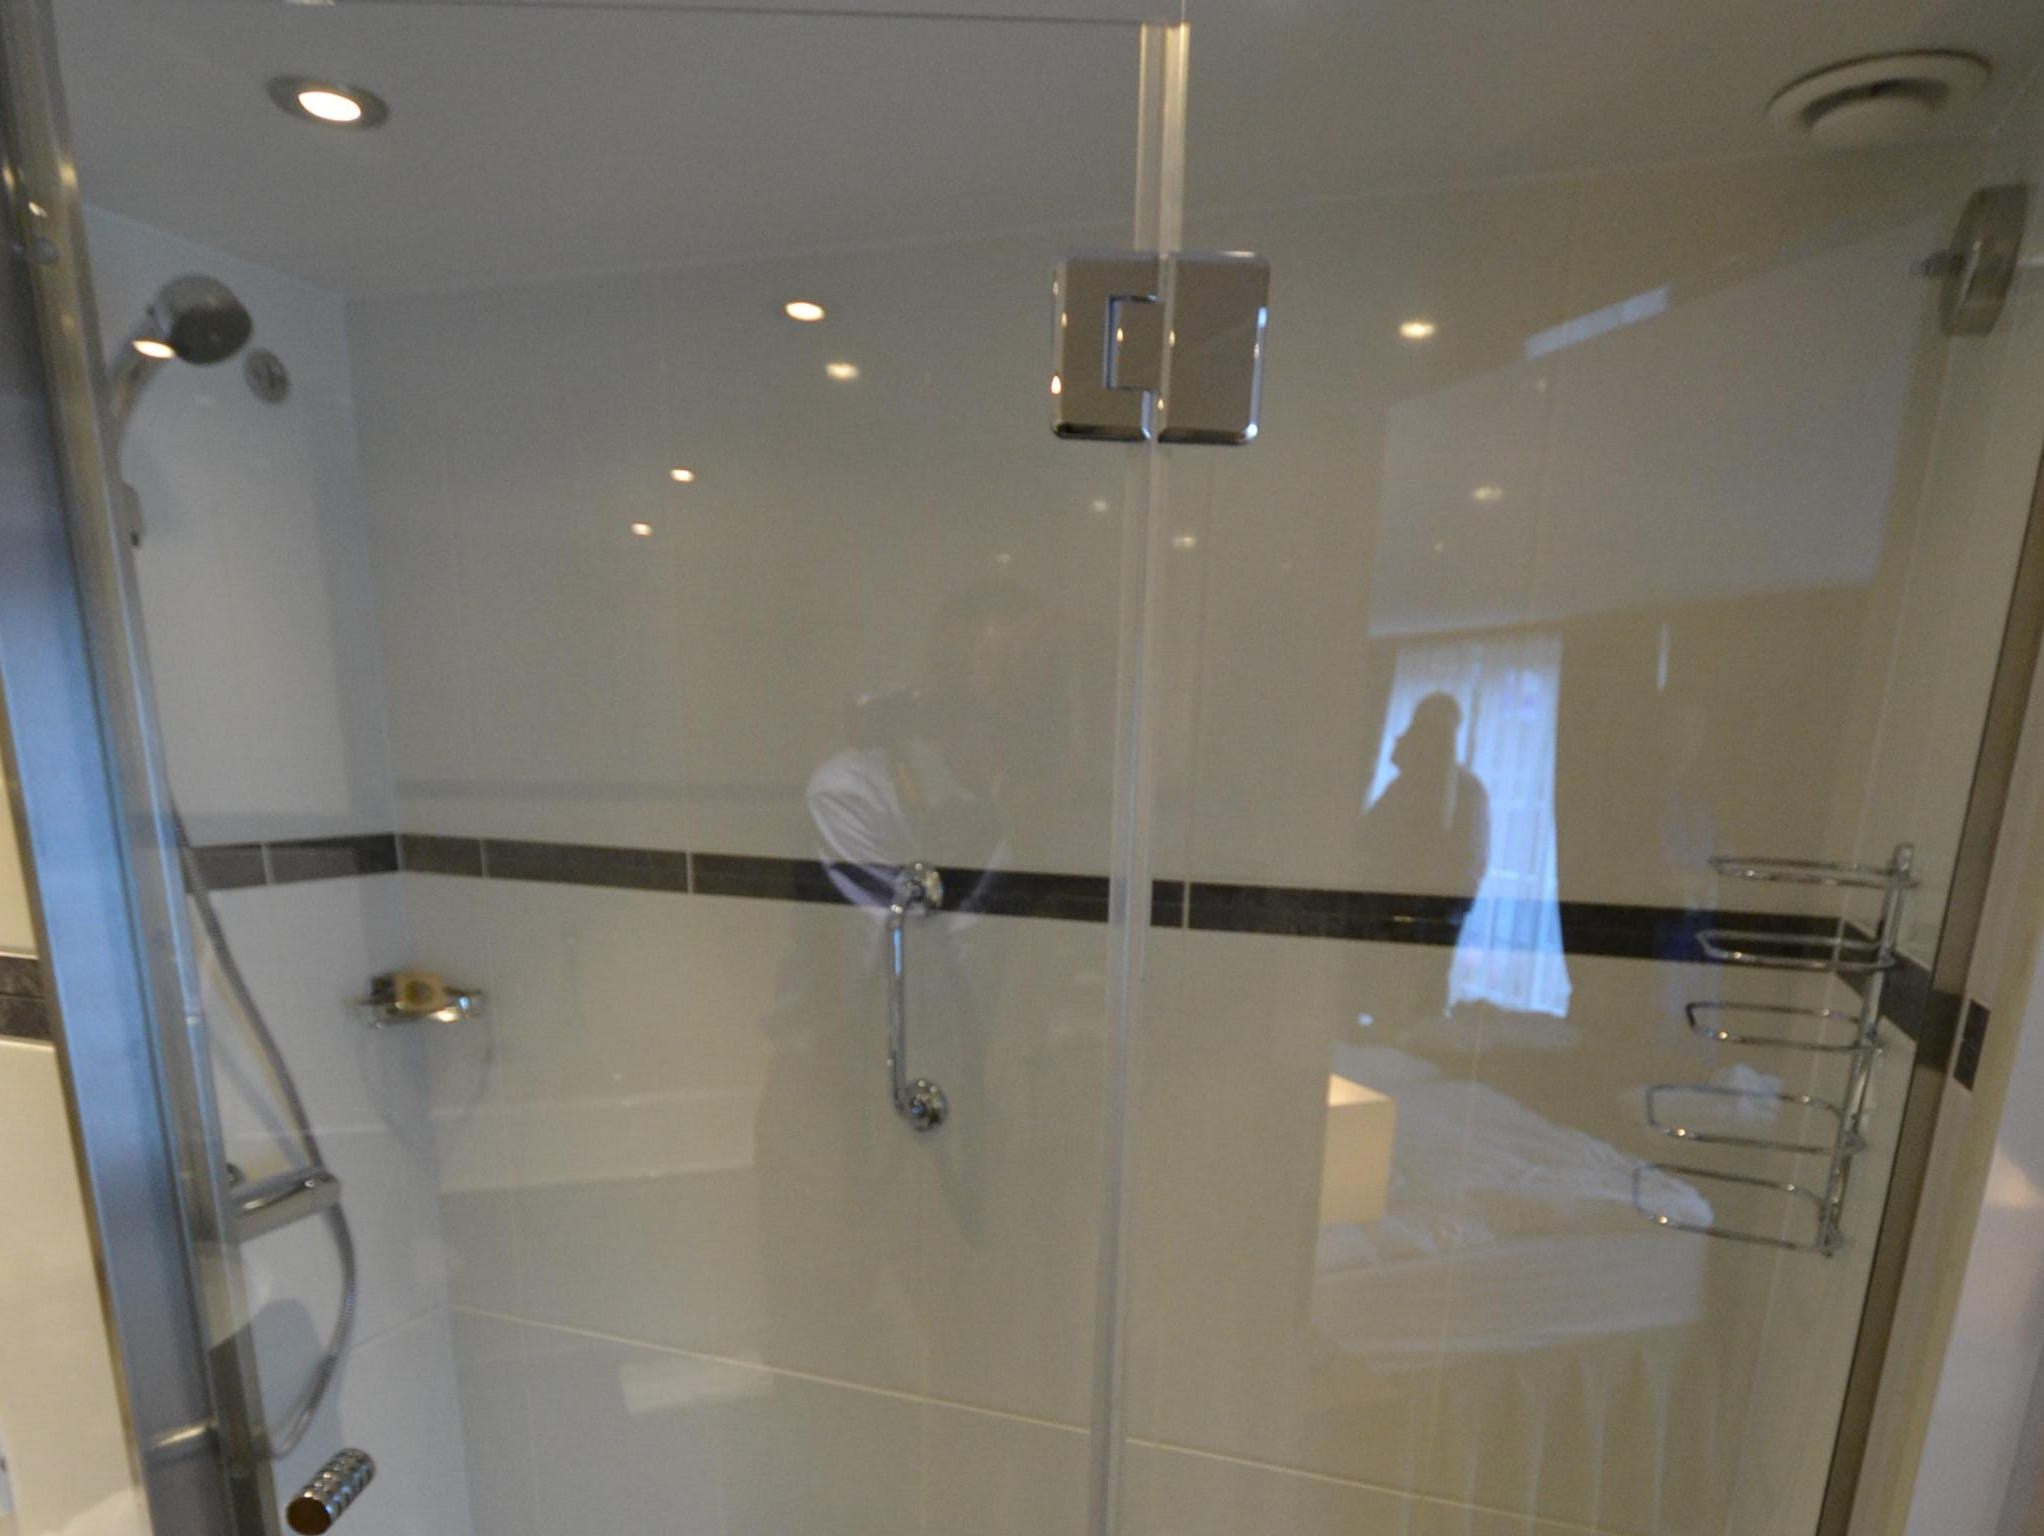 The Owner's Suite bathroom comes with a stand-alone shower as well as a separate bathtub.